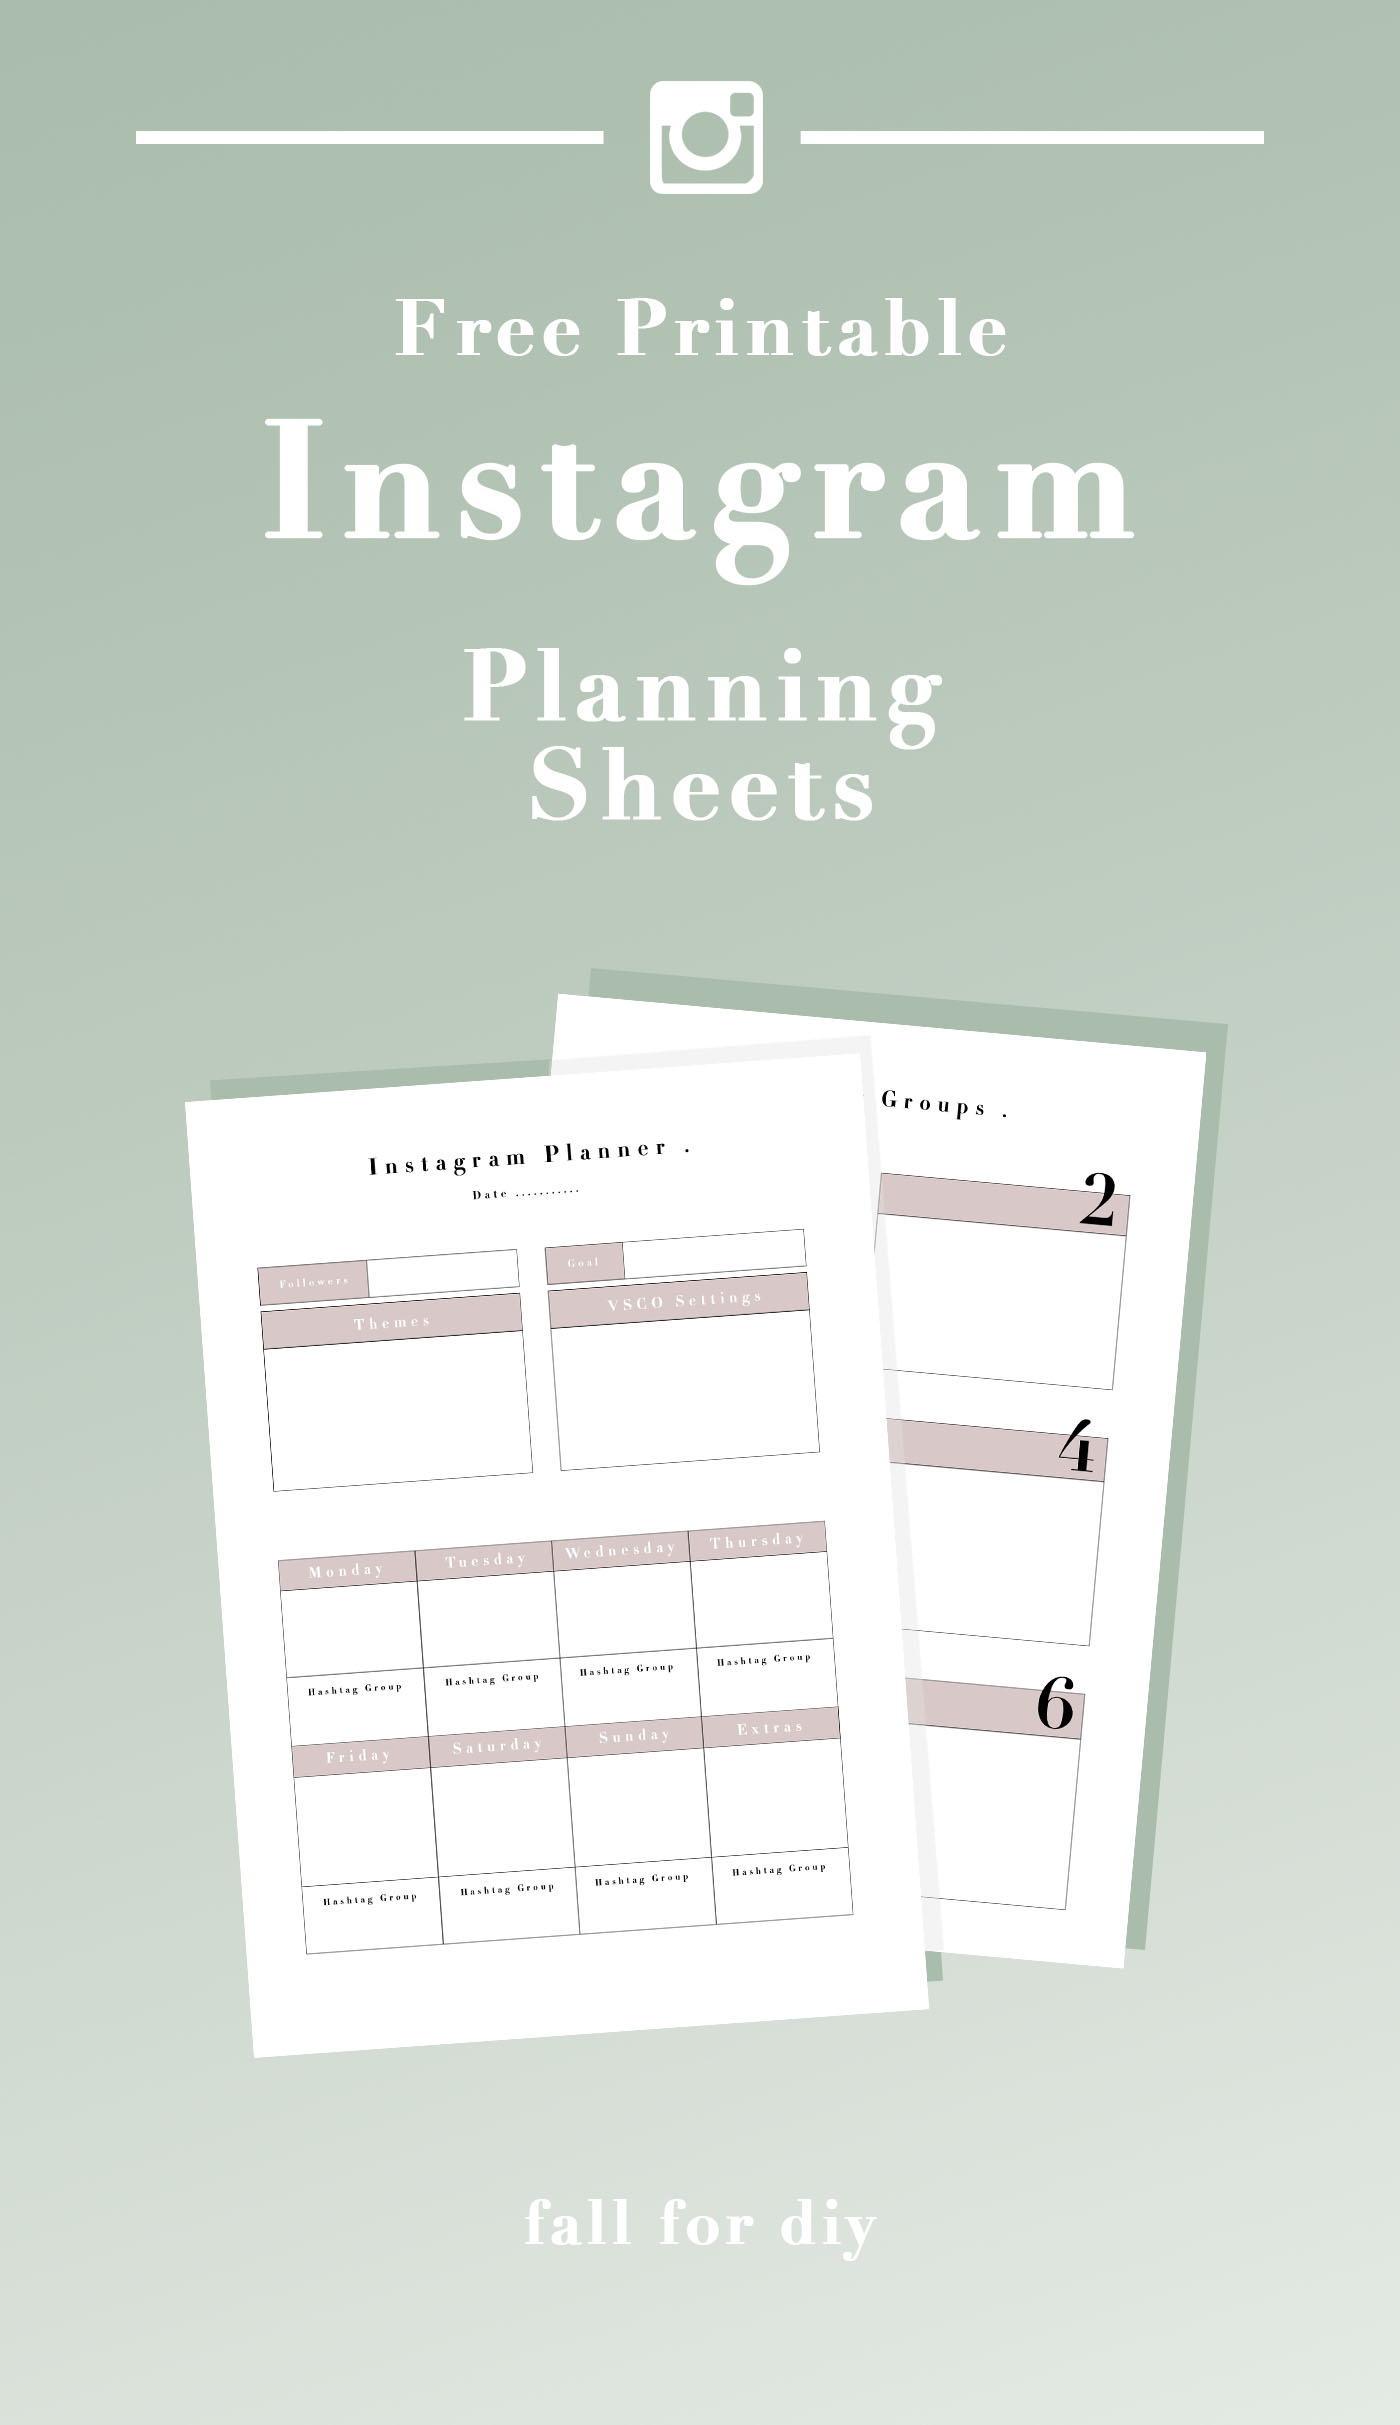 Grow your Following: Free Printable Social Media Planner for Instagram